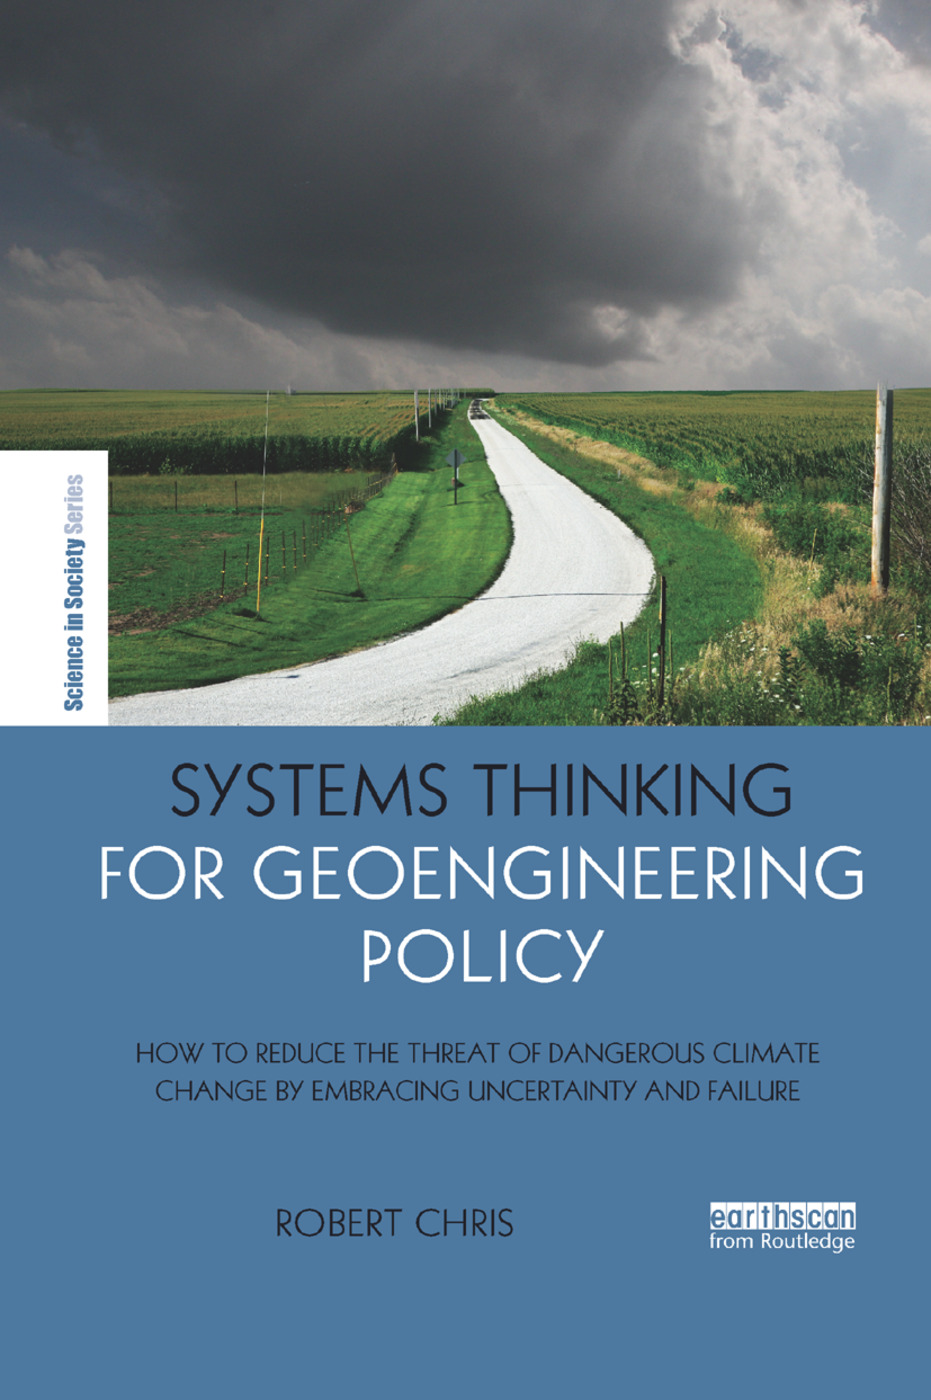 Systems Thinking for Geoengineering Policy: How to reduce the threat of dangerous climate change by embracing uncertainty and failure book cover